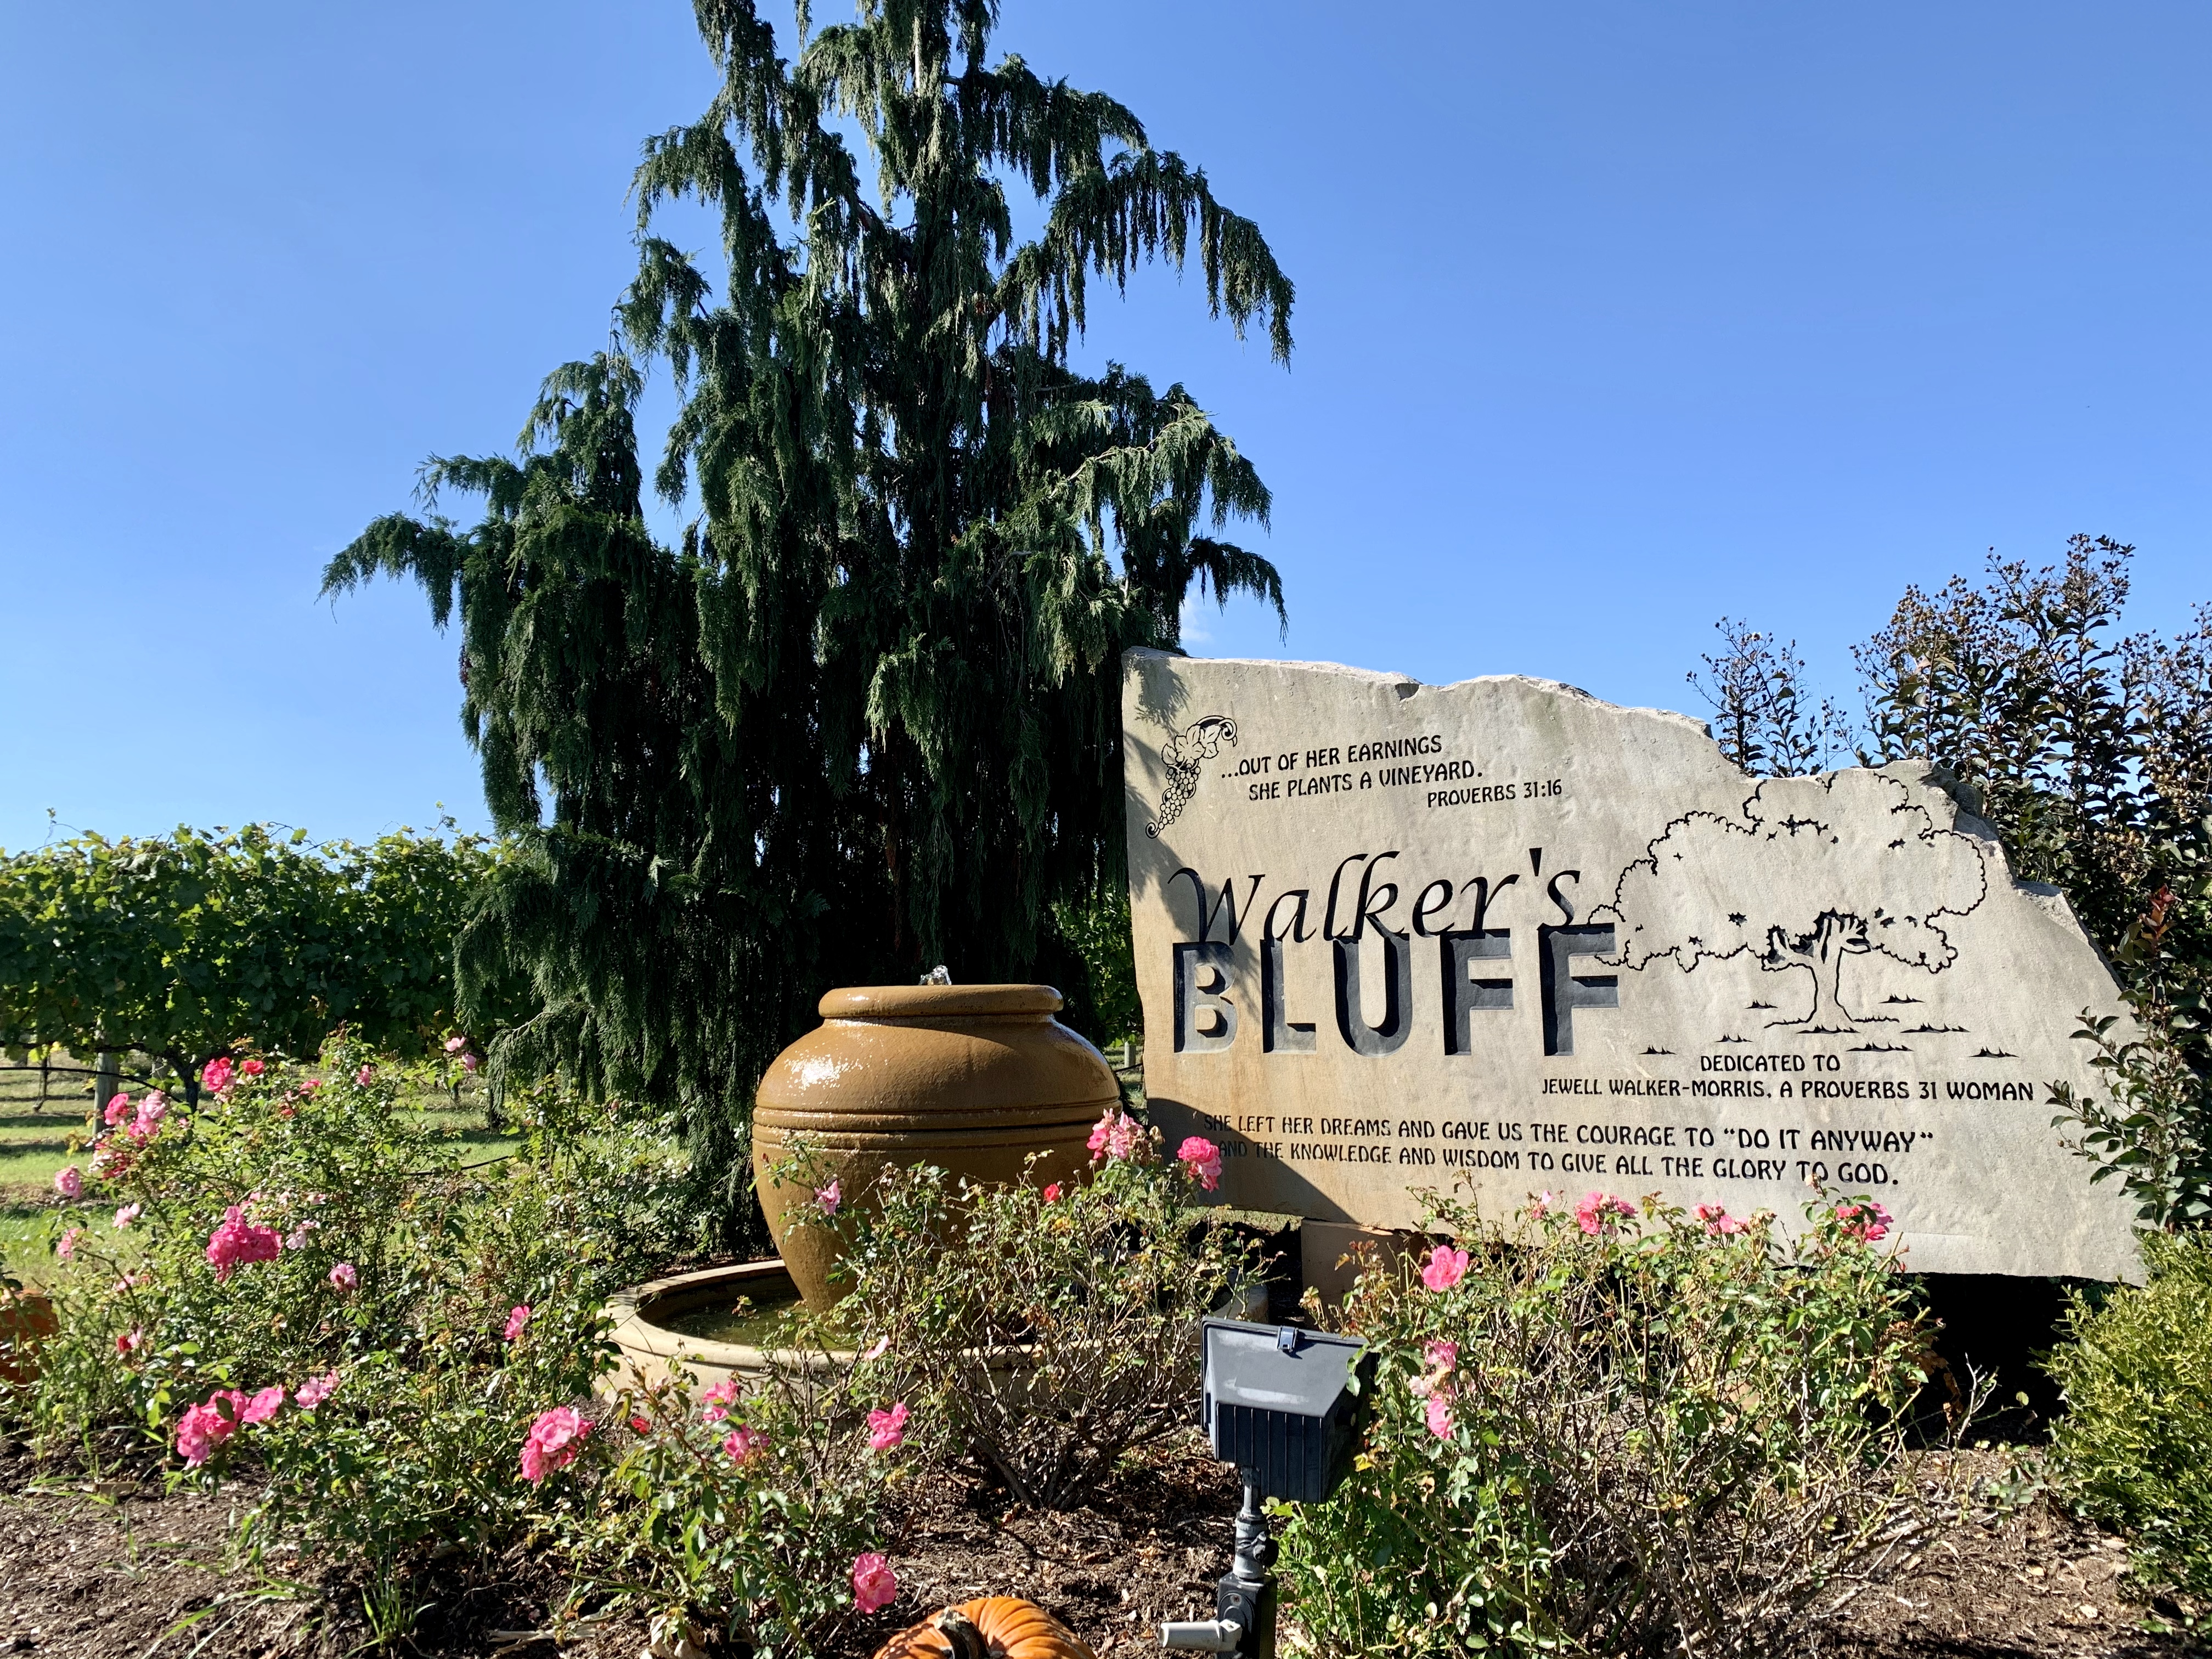 The entrance to Walker's Bluff winery near Carterville, which could soon be home to a casino alongside its upscale wedding venue space.